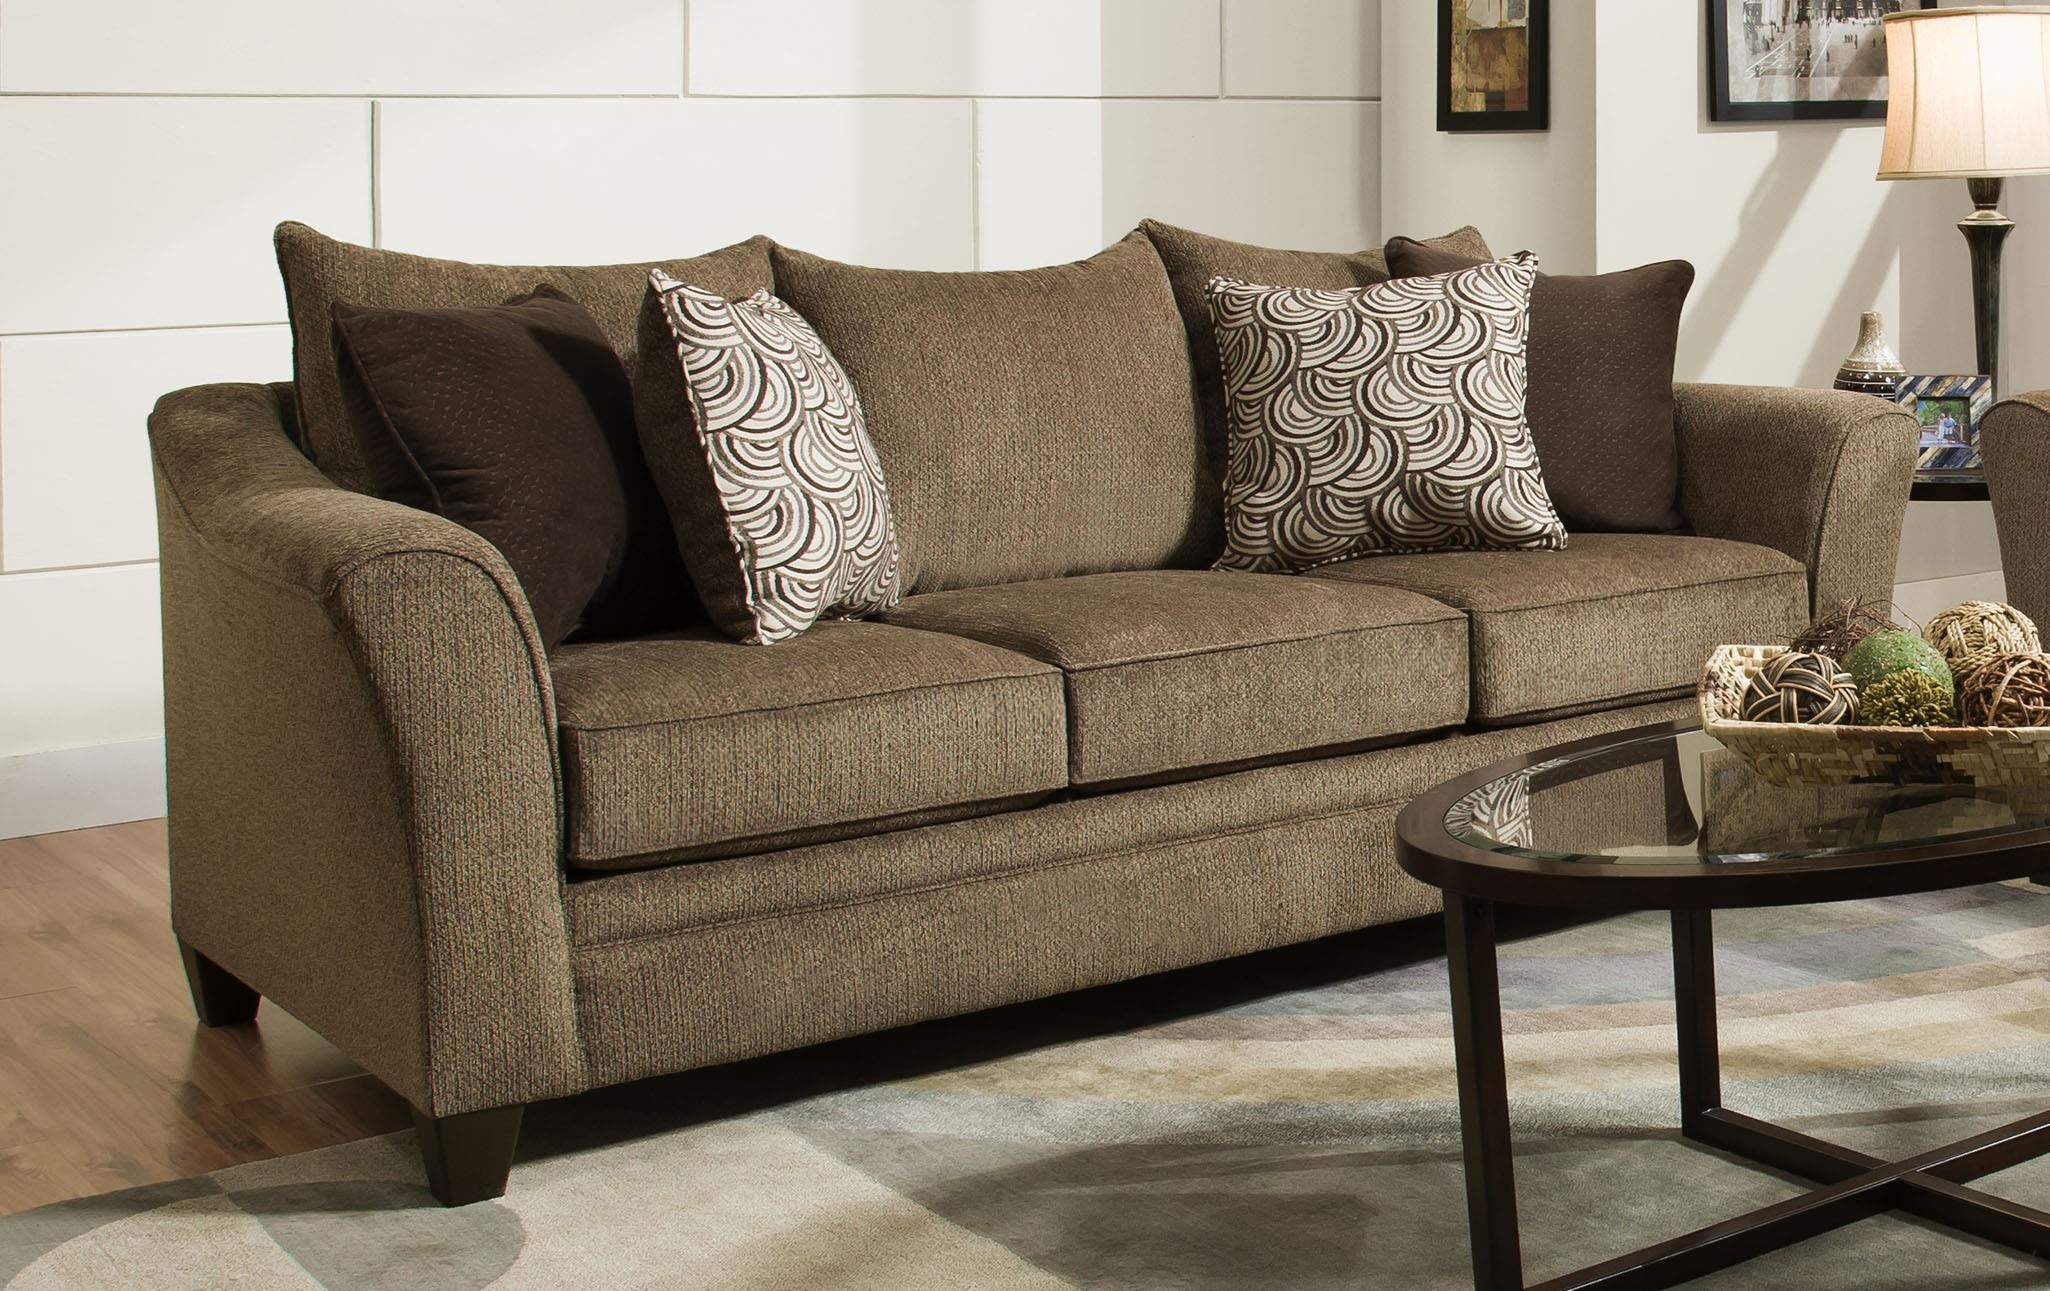 United Furniture Industries 6485 Transitional Sofa - Item Number: 6485Sofa-AlbanyTruffle